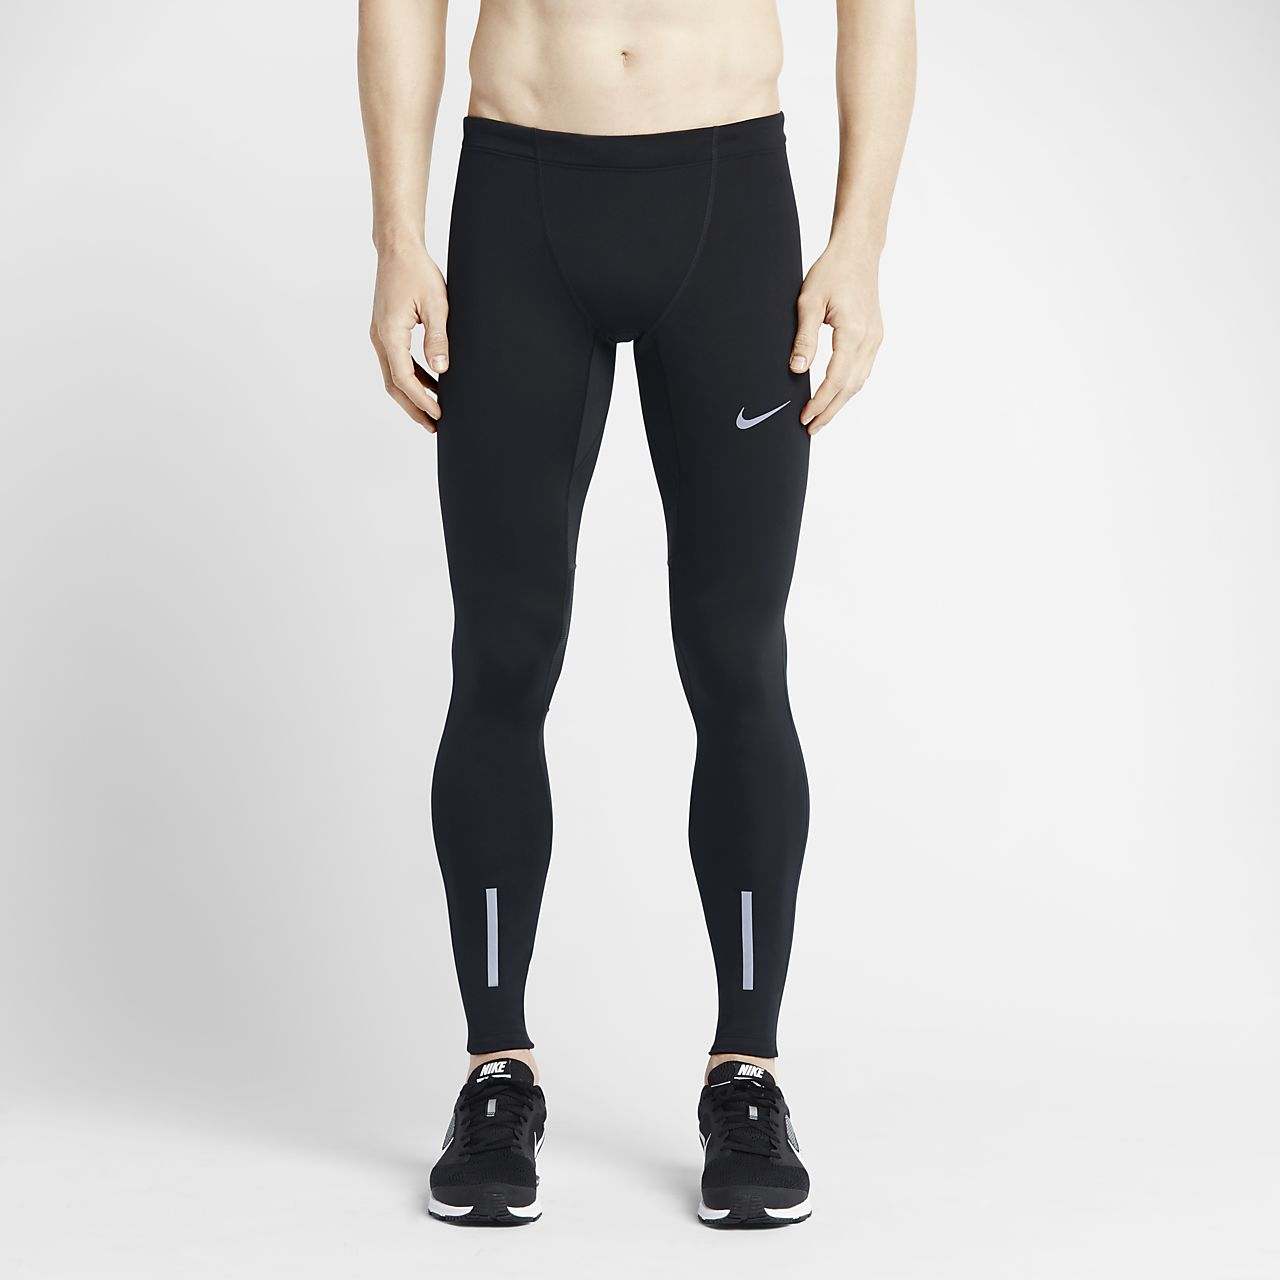 1ac2c22de3bbb Nike Power Tech Men's Running Tights. Nike.com GB